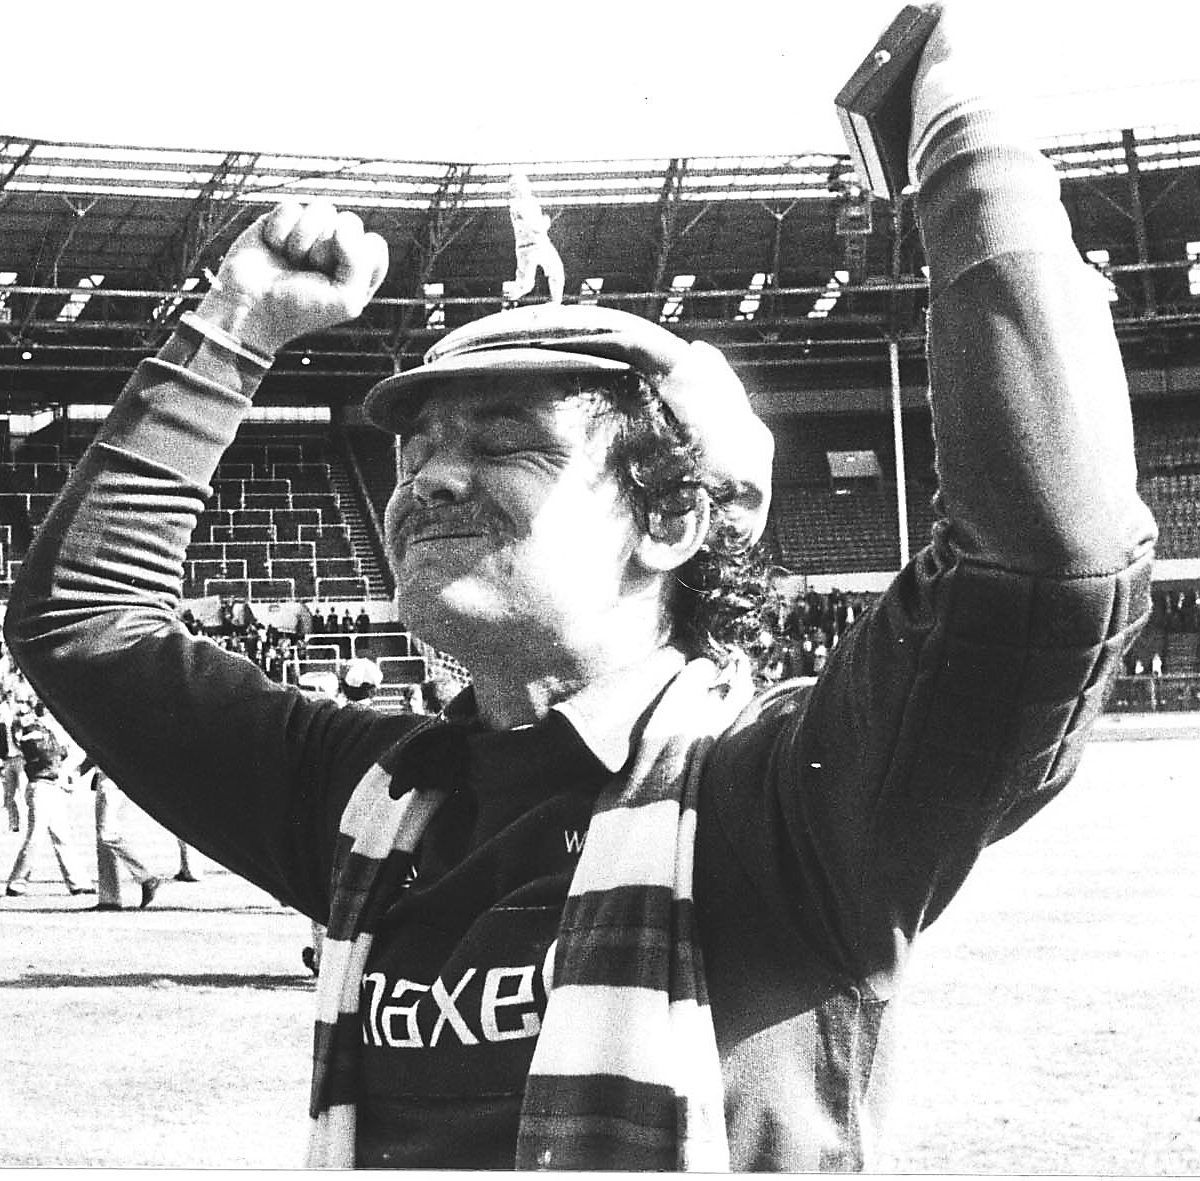 Former Telford United goalkeeper Kevin Charlton, hero of the club throughout the 1980s, has died aged 66